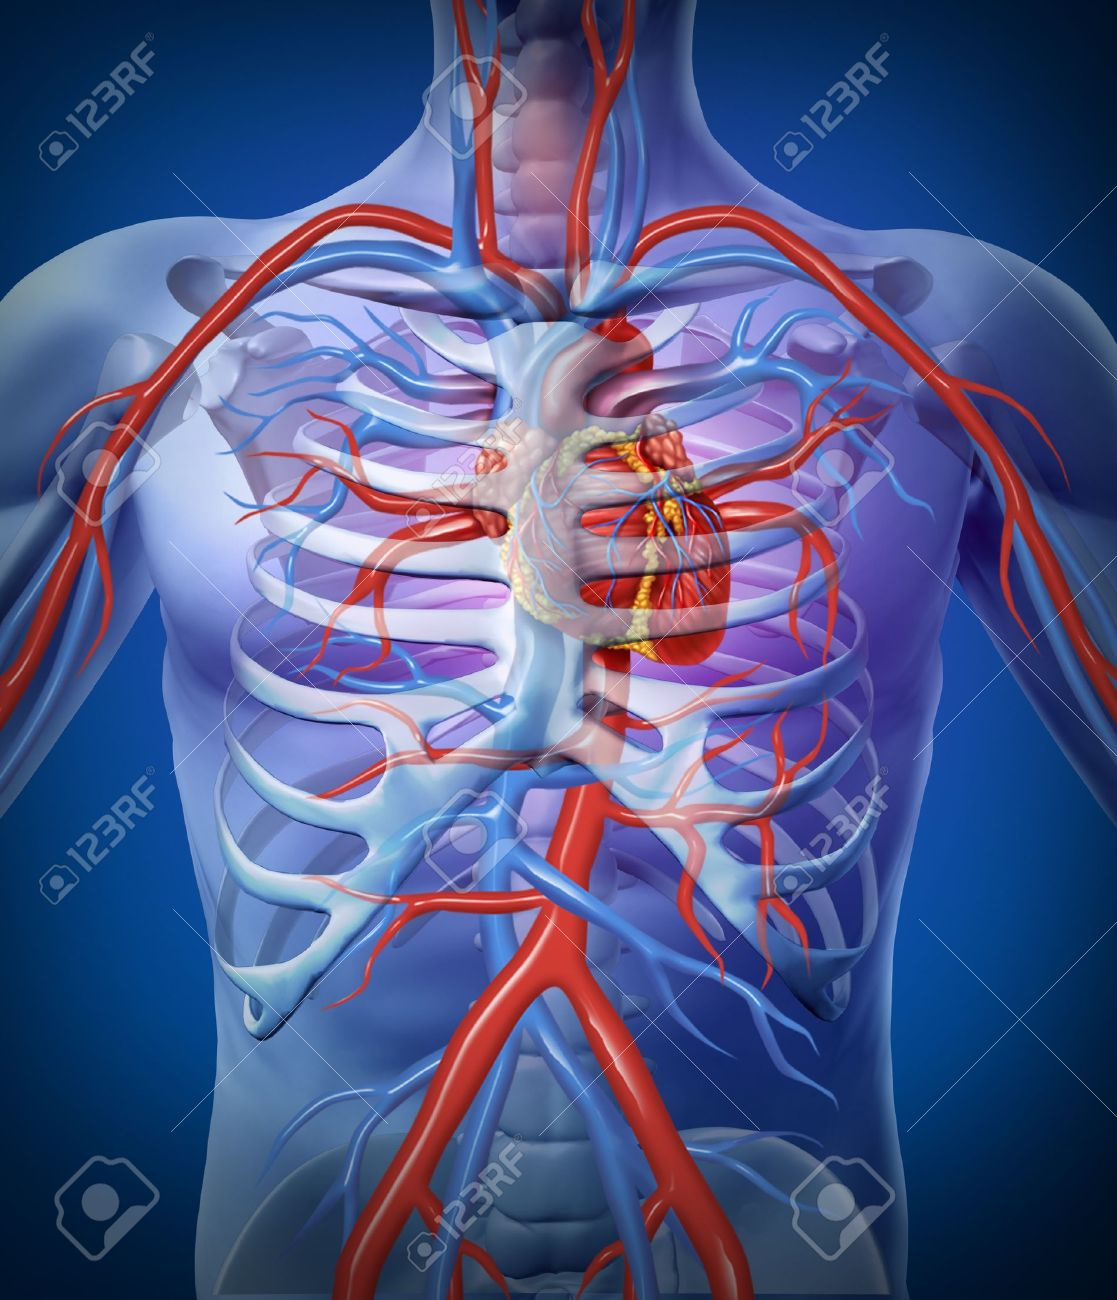 Human Heart Circulation In A Skeleton Cardiovascular System With